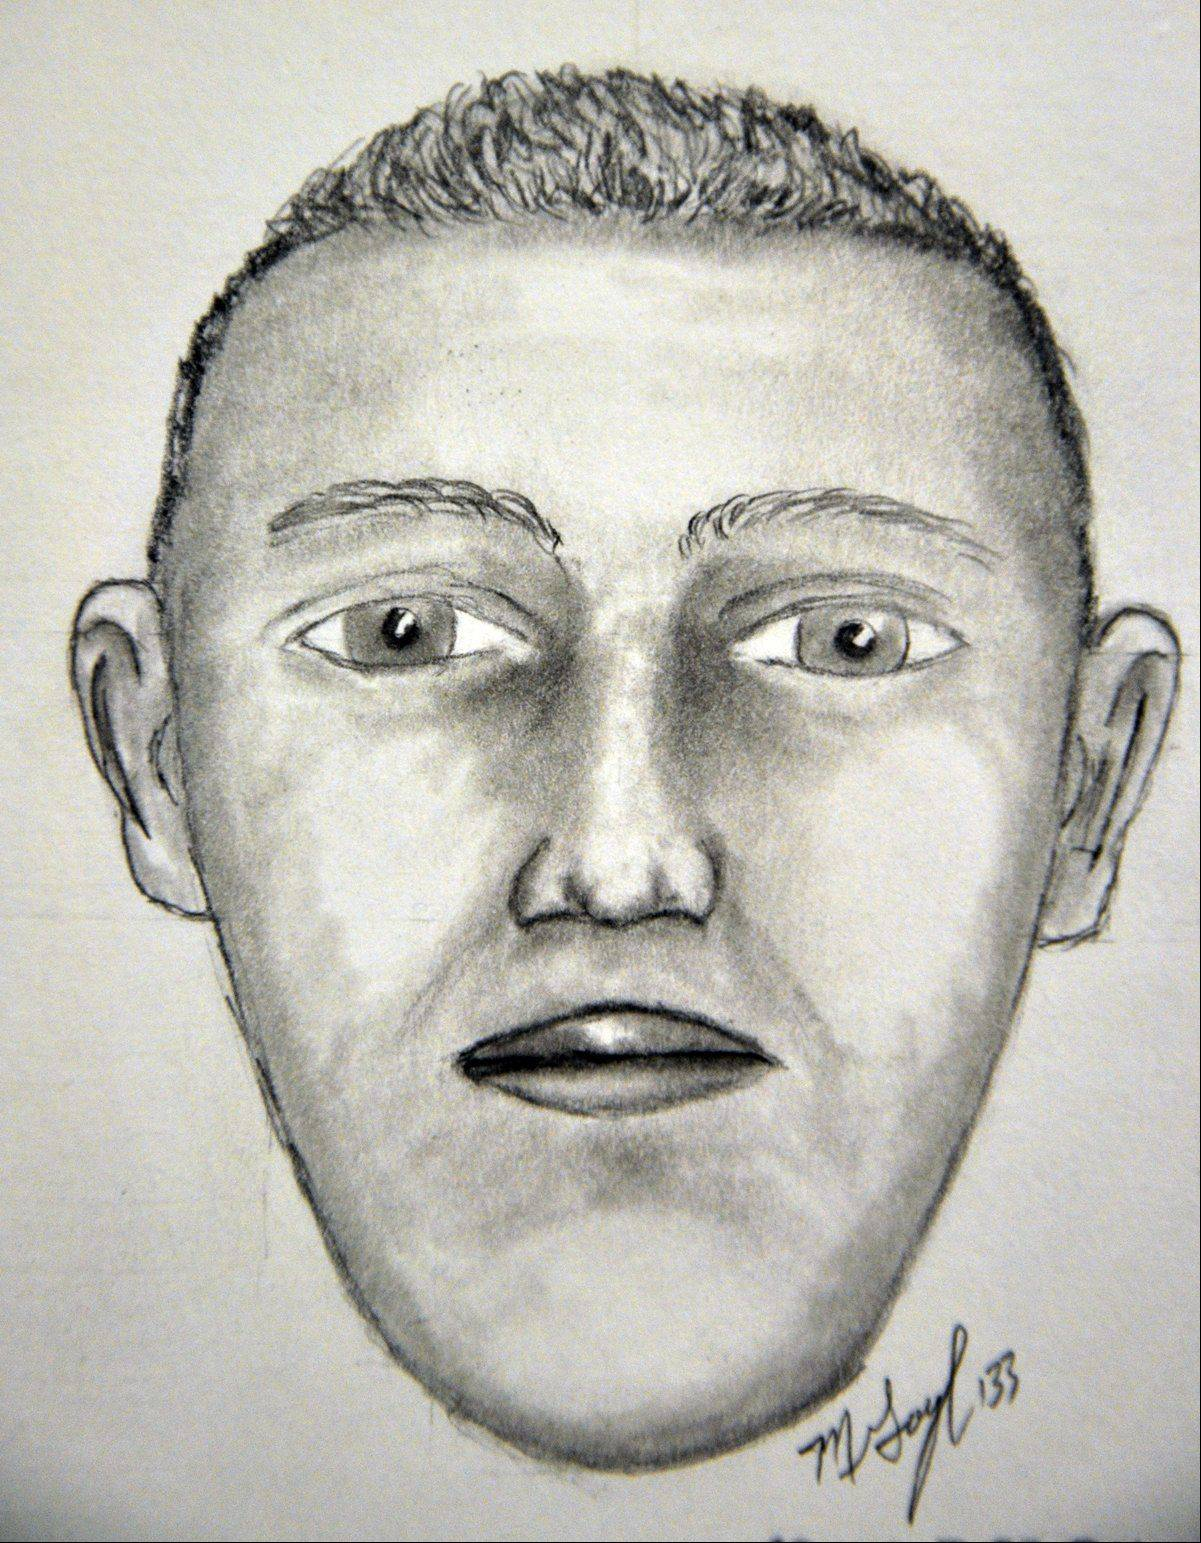 This is a sketch of a man police believe was responsible for an armed robbery late last month.